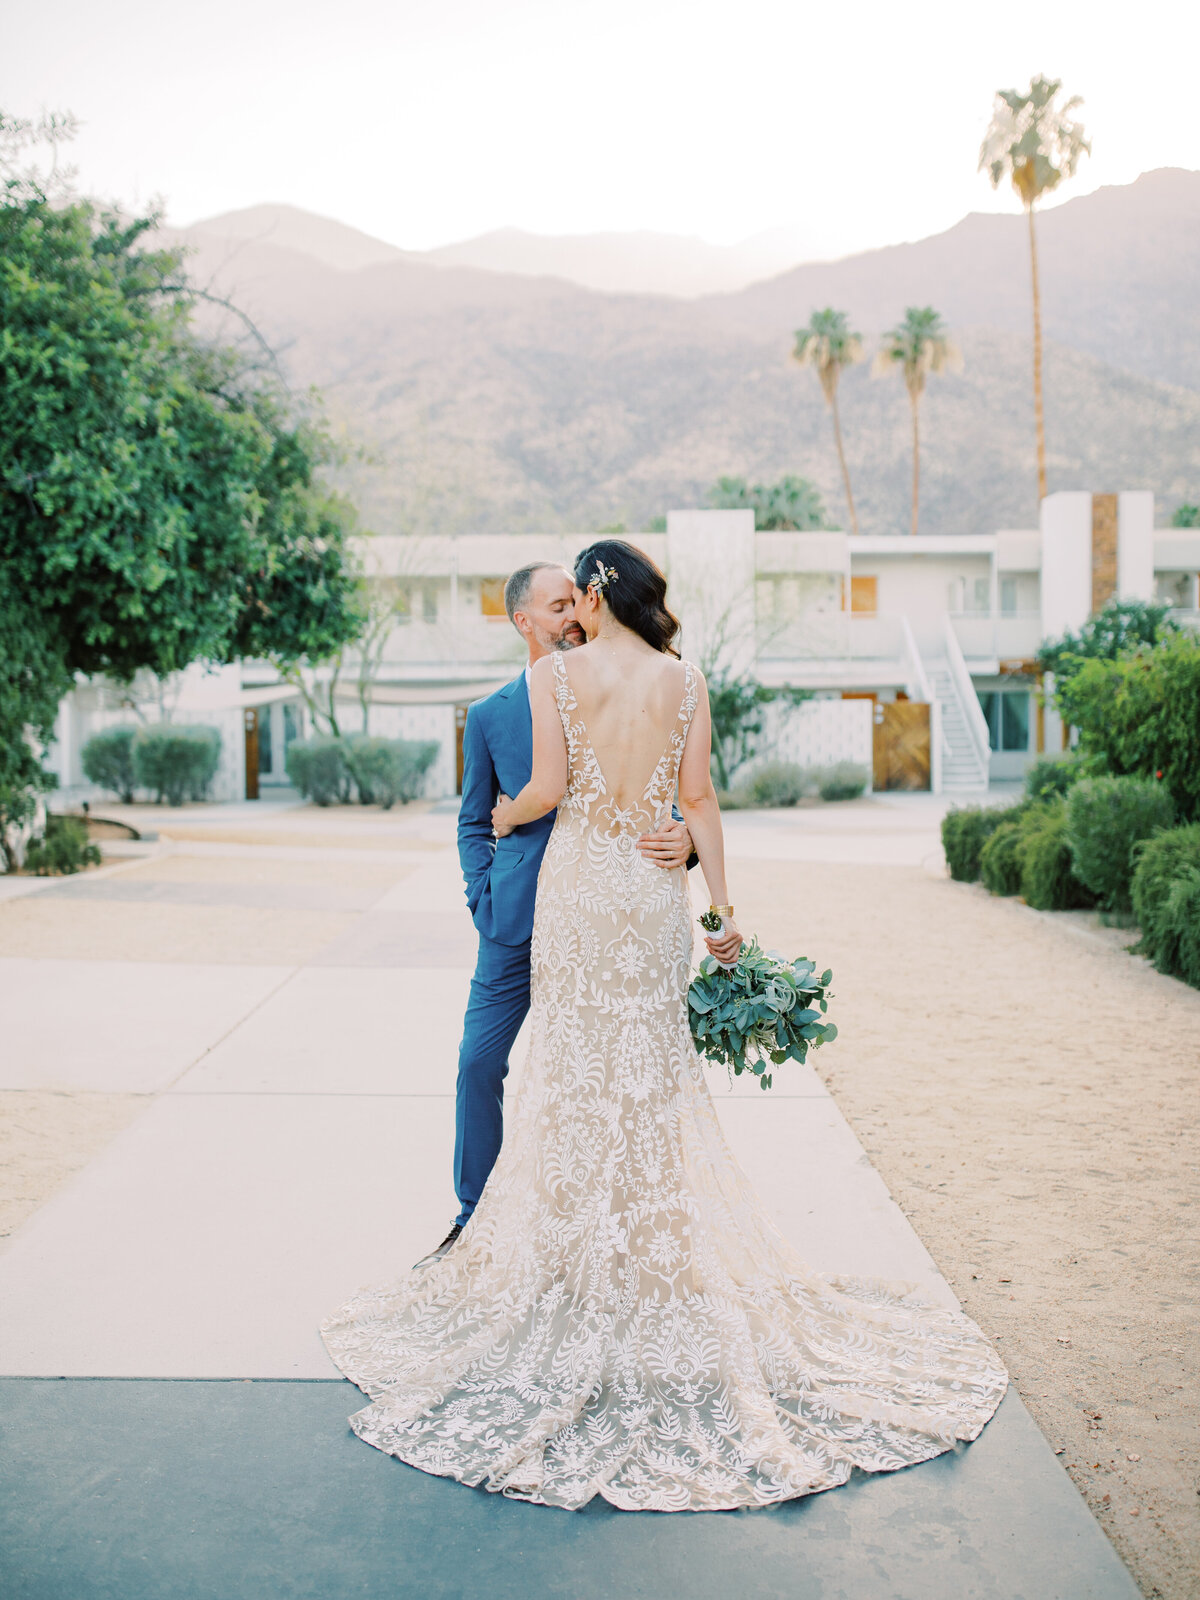 Charleston Wedding Photographer | Beaufort Wedding Photographer | Savannah Wedding Photographer | Santa Barbara Wedding Photographer | San Luis Obispo Wedding Photographer-31